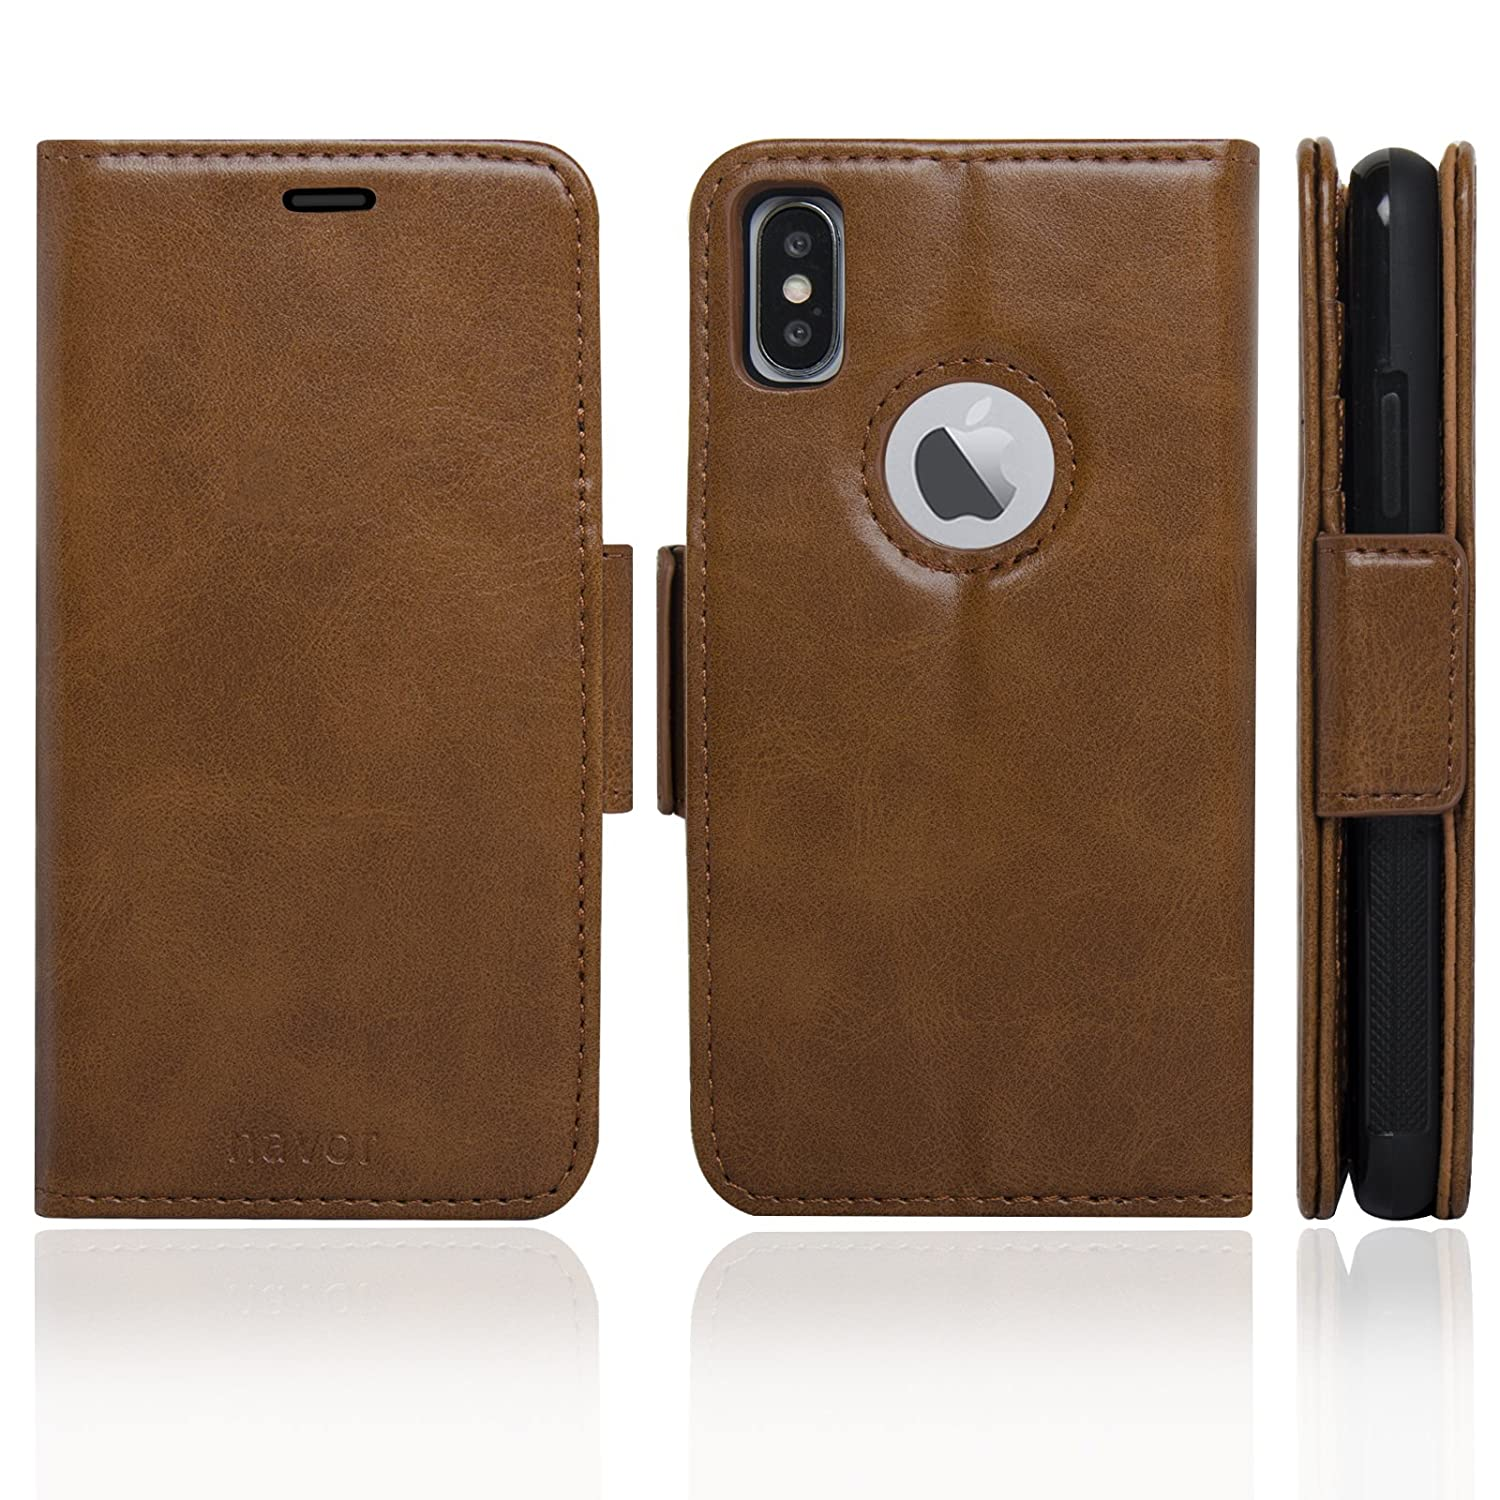 Logo Hole Vajio Series 4326797482 IP7PVJBR Navor Detachable Magnetic Wallet Case RFID Protection Brown Compatible for iPhone 7 Plus